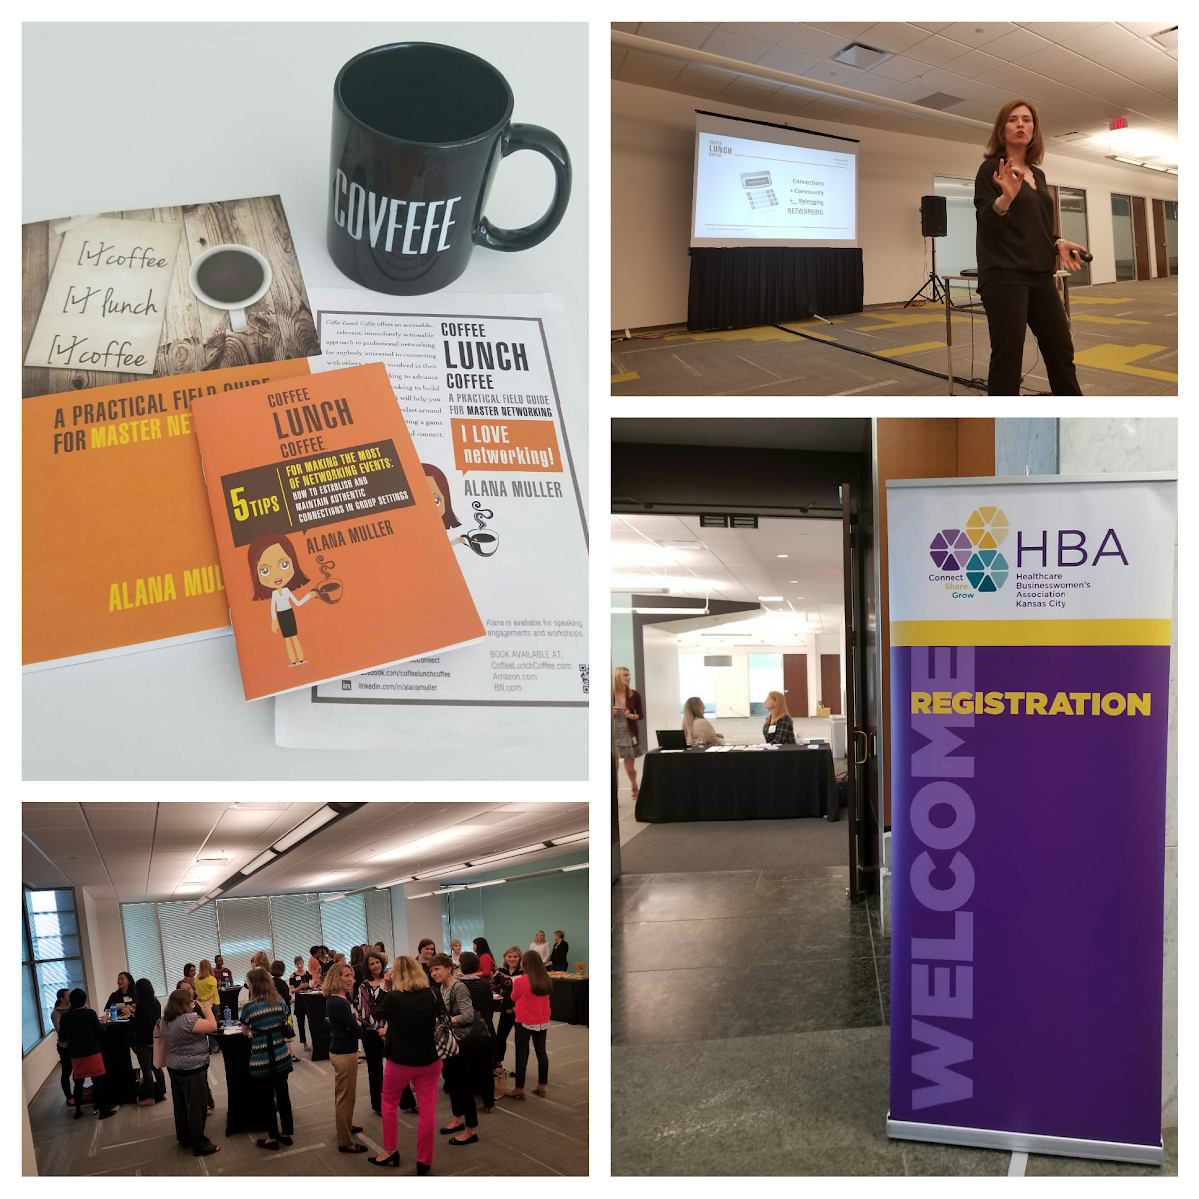 Collage of images from HBA networking event at Intouch Solutions offices